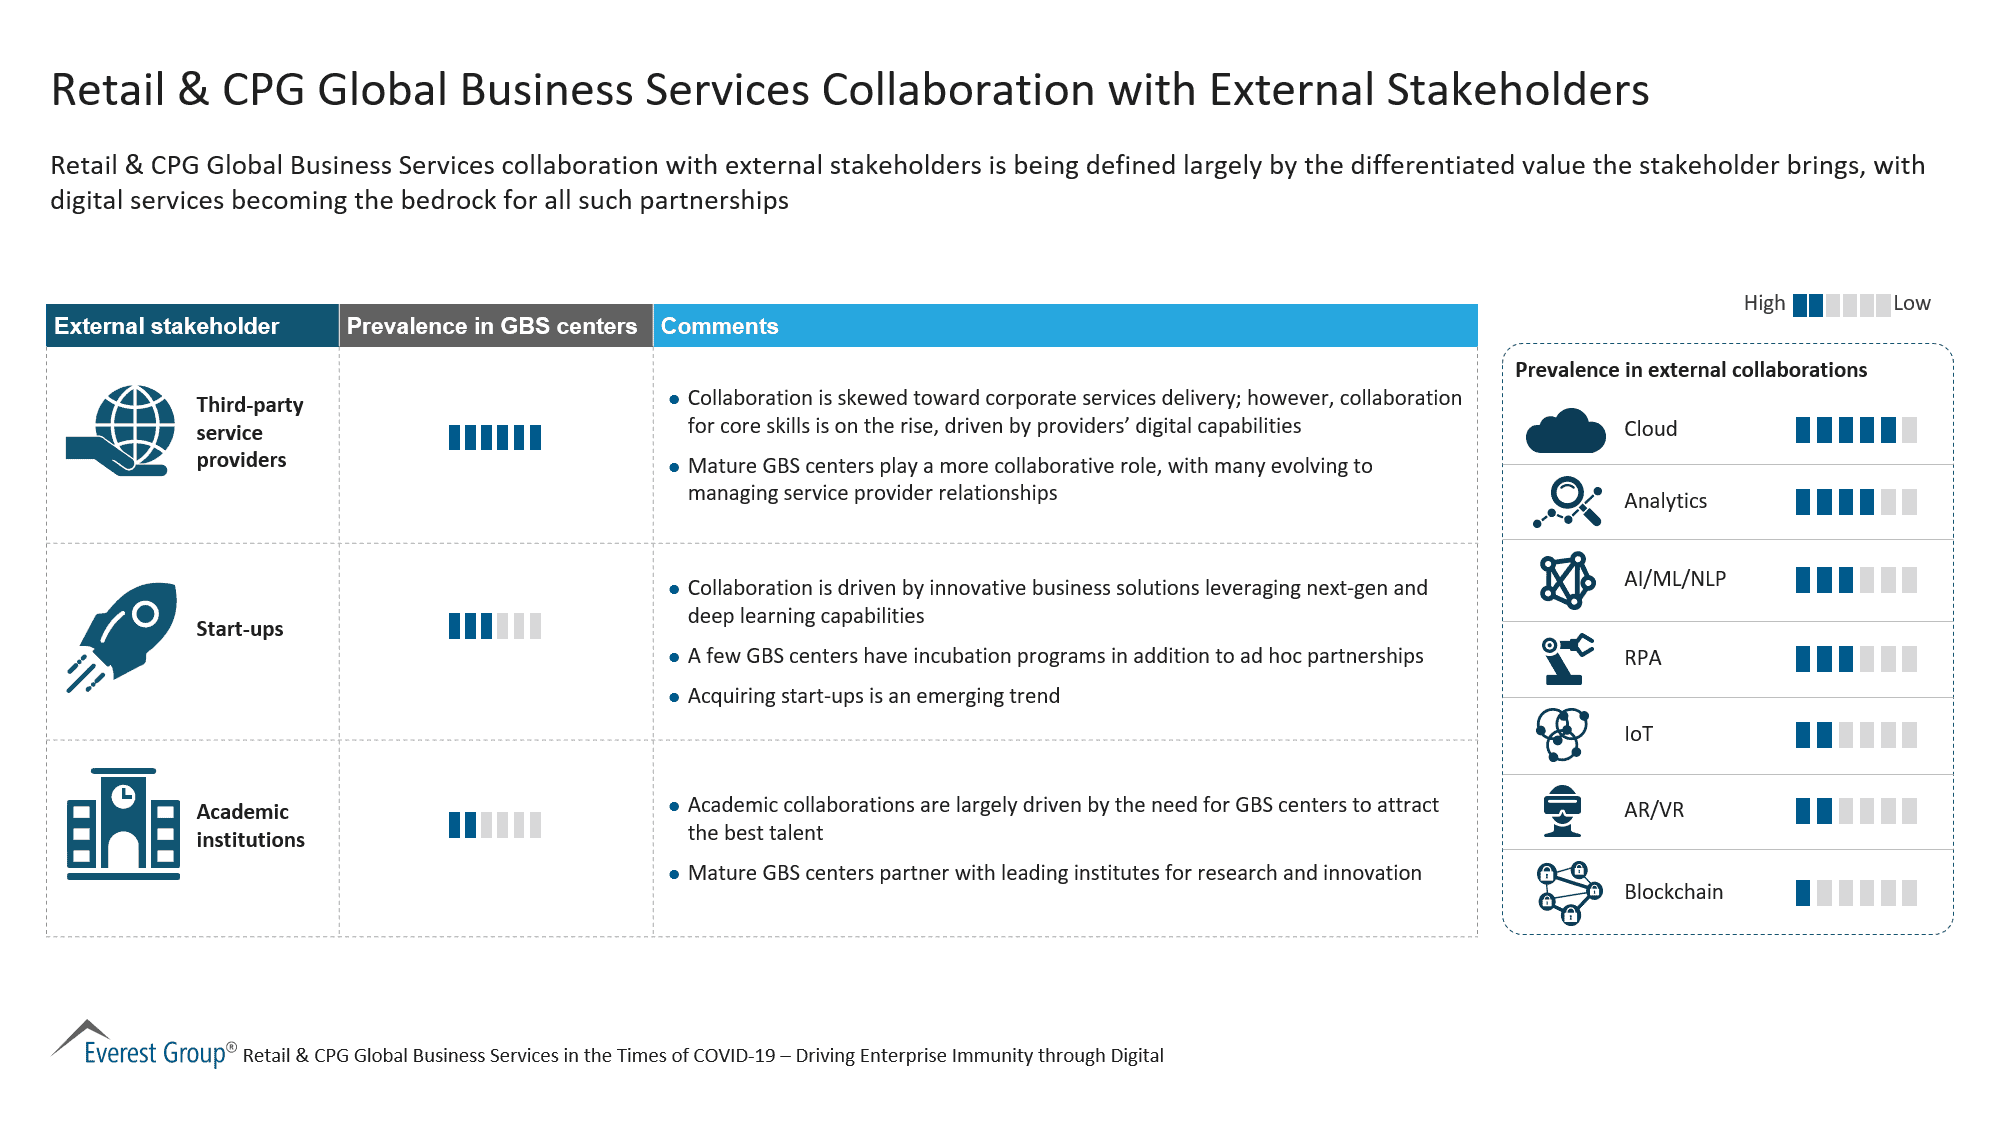 Retail & CPG Global Business Services Collaboration with External Stakeholders